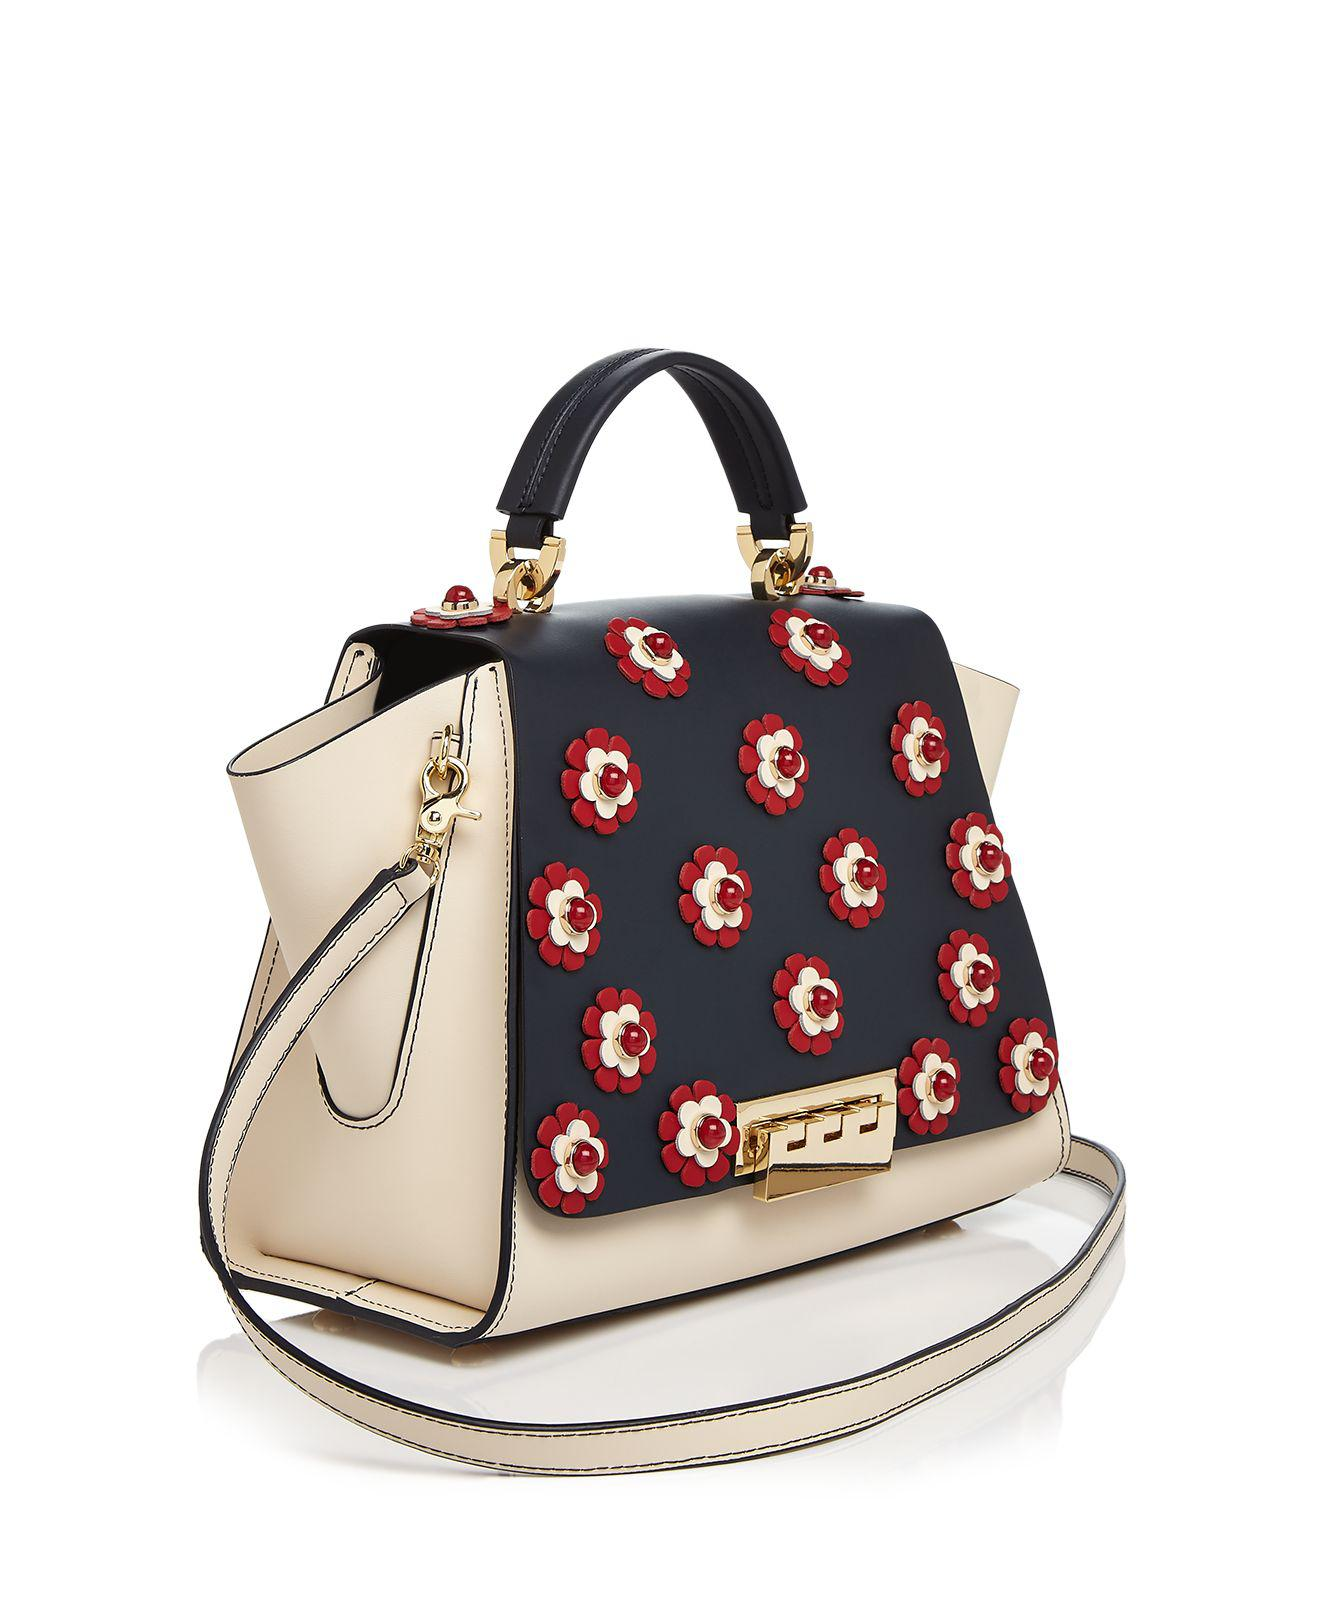 Zac Zac Posen Eartha Iconic Floral Soft Top Handle Leather